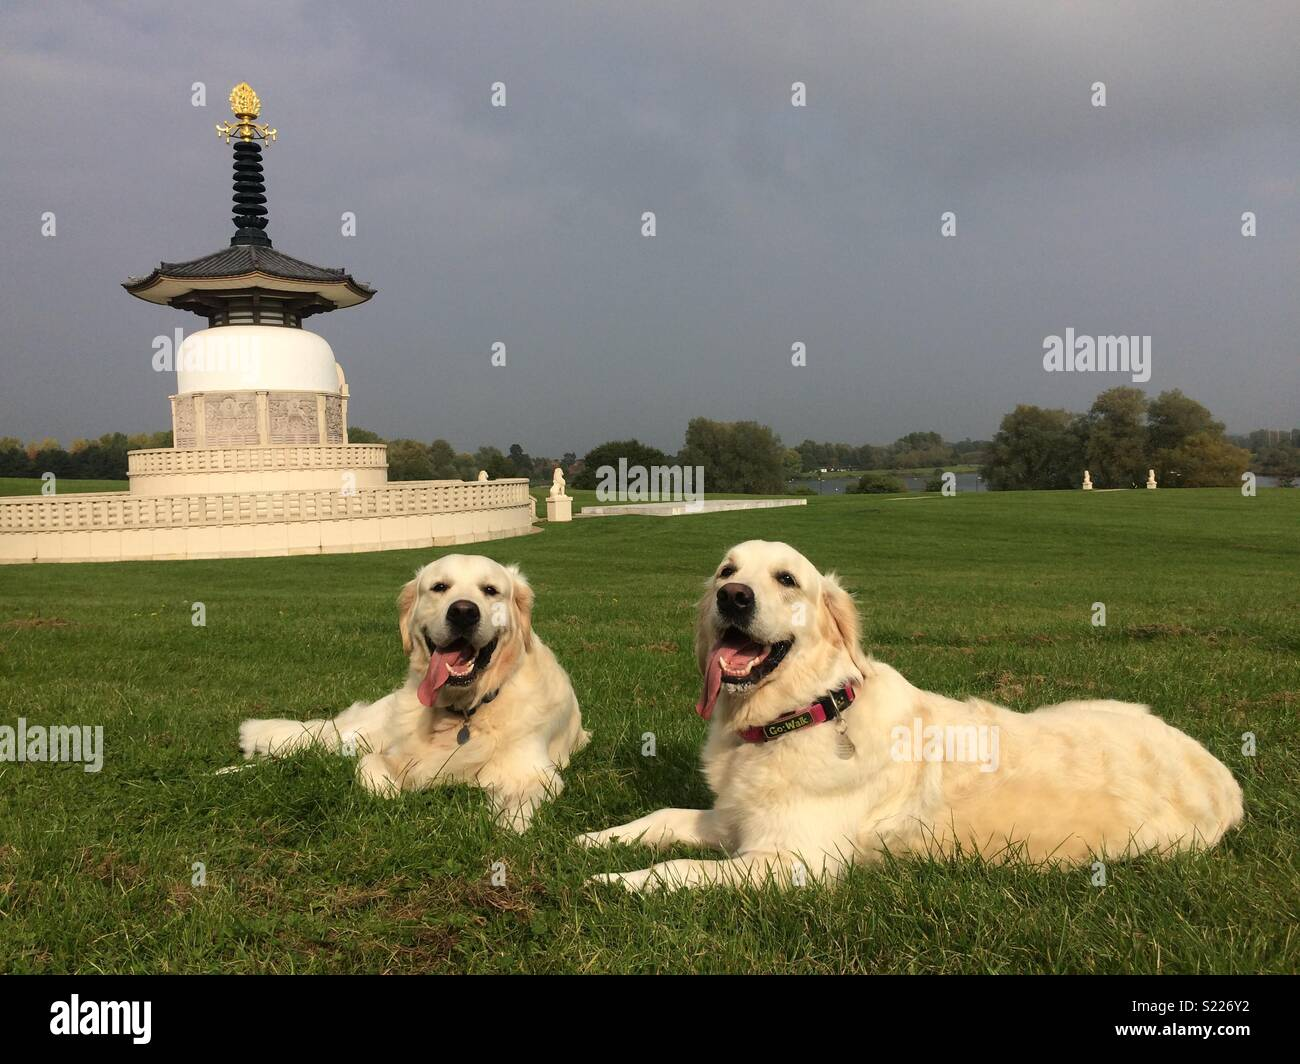 Temple dogs - Stock Image